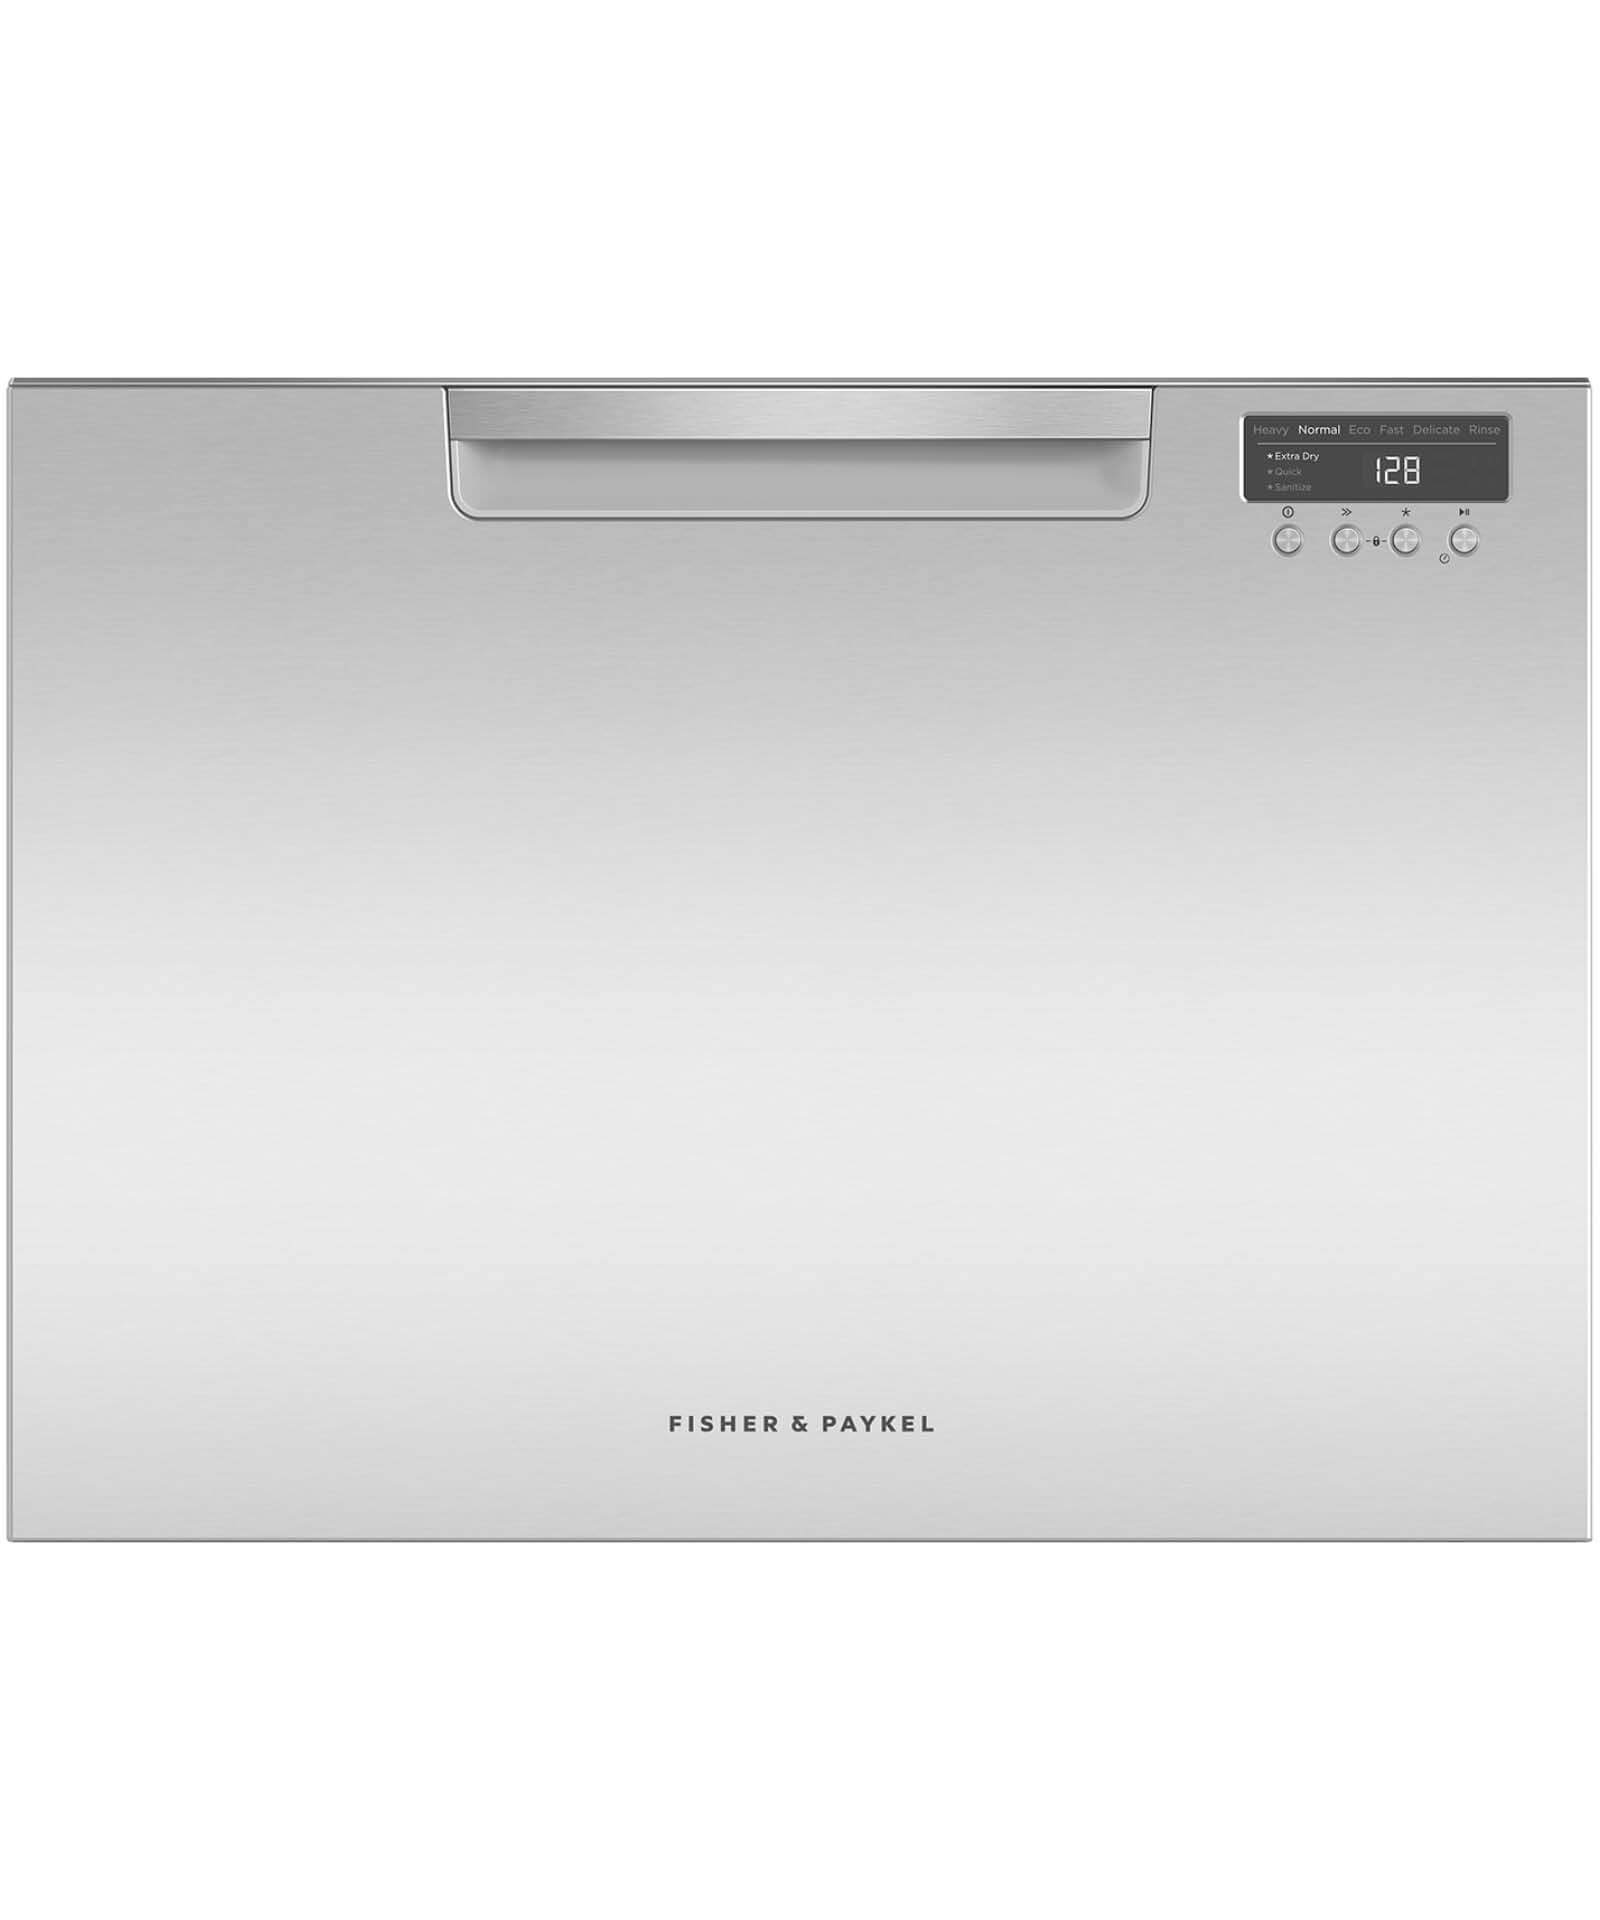 DD60SCTX9 - Tall Single DishDrawer™ Dishwasher incl Sanitise, Extra Dry and full flex racking - 81593